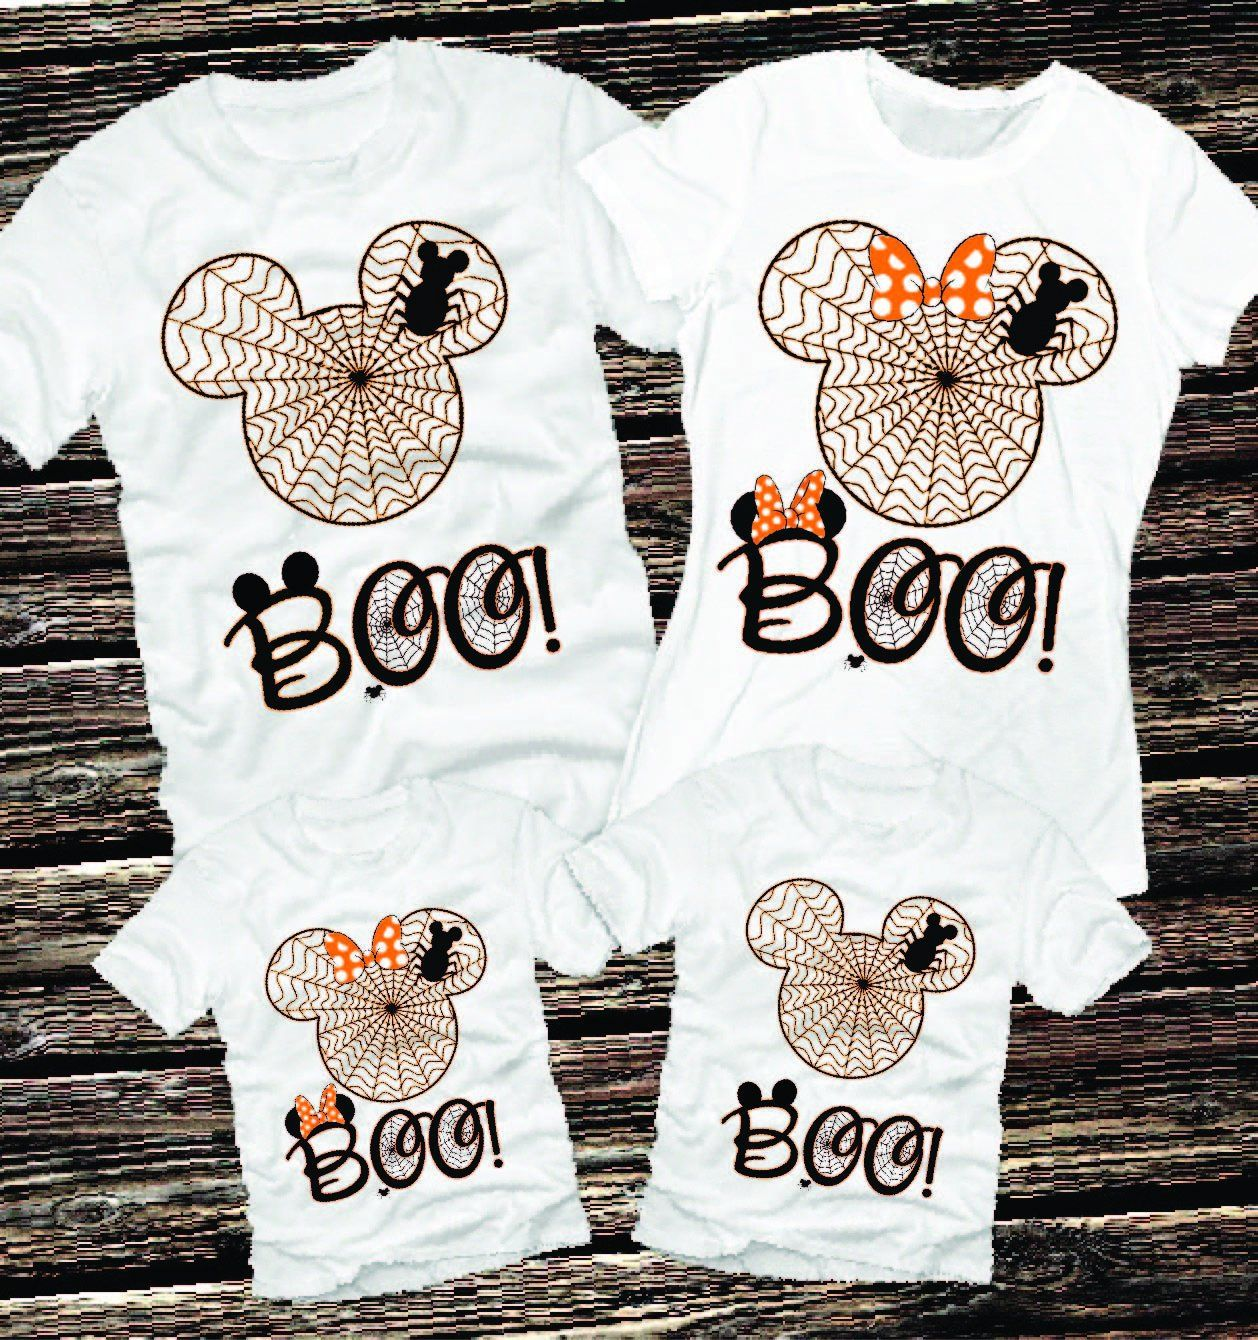 Disney Halloween Shirts Etsy.Boo Disney Shirts Family Halloween Shirts Matching Halloween